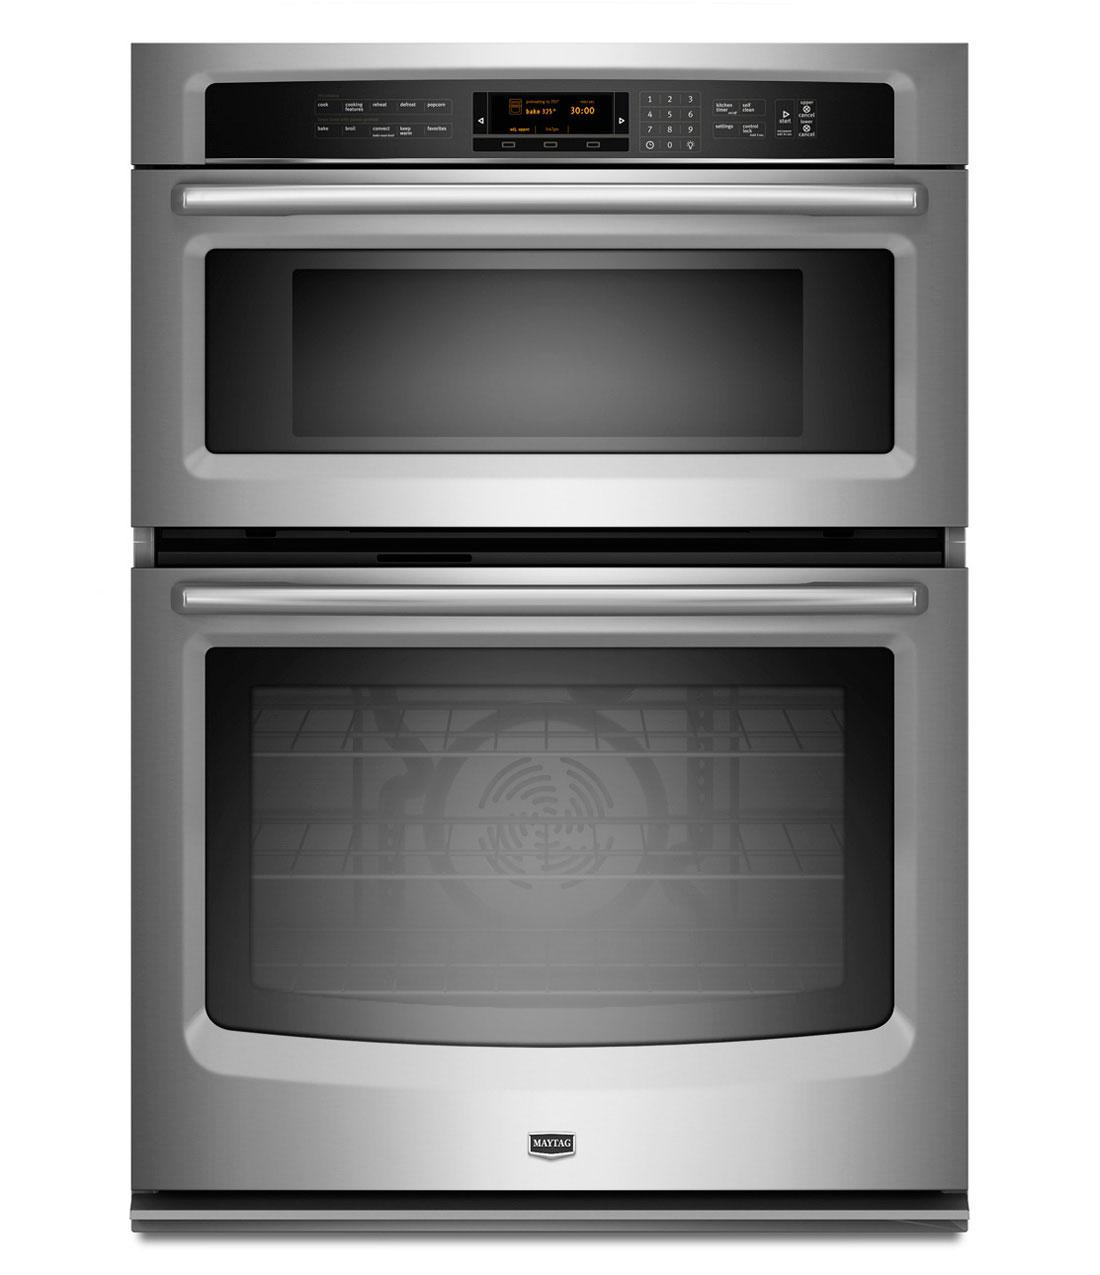 Mmw9730aw Maytag Mmw9730aw Double Wall Ovens White